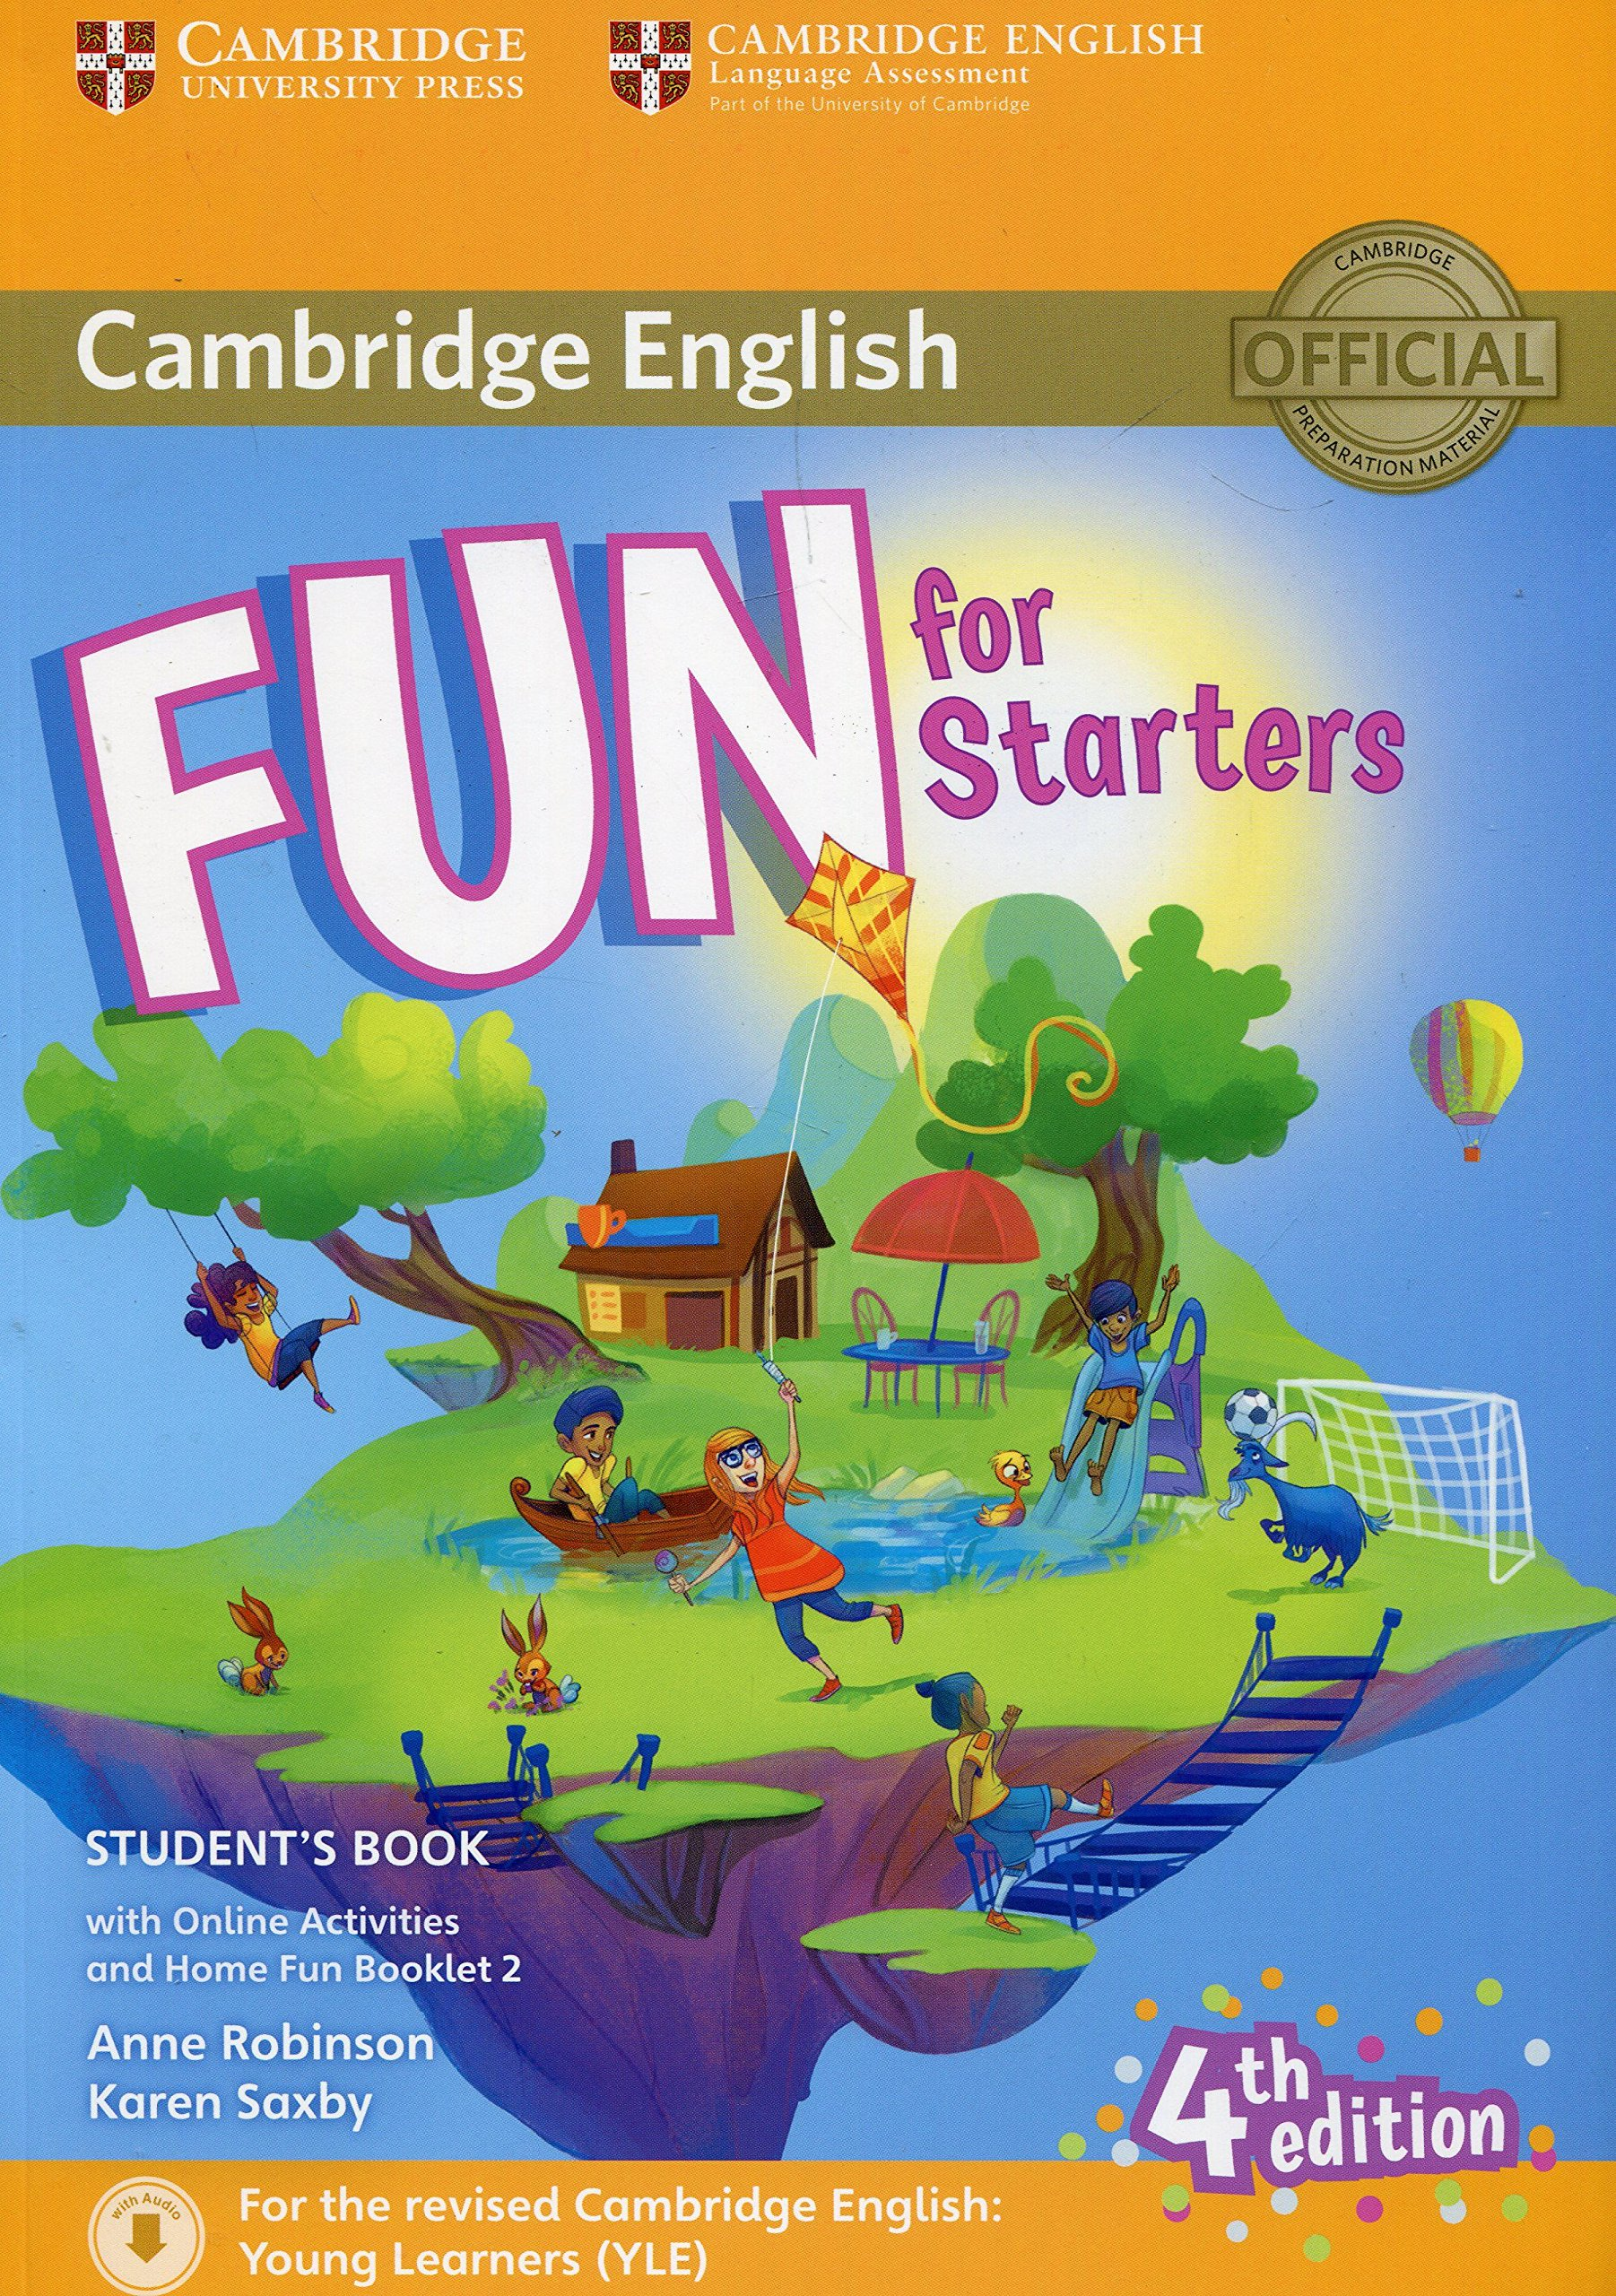 Fun for Starters Student's Book with Online Activities with Audio and Home Fun Booklet 2 (Cambridge English)